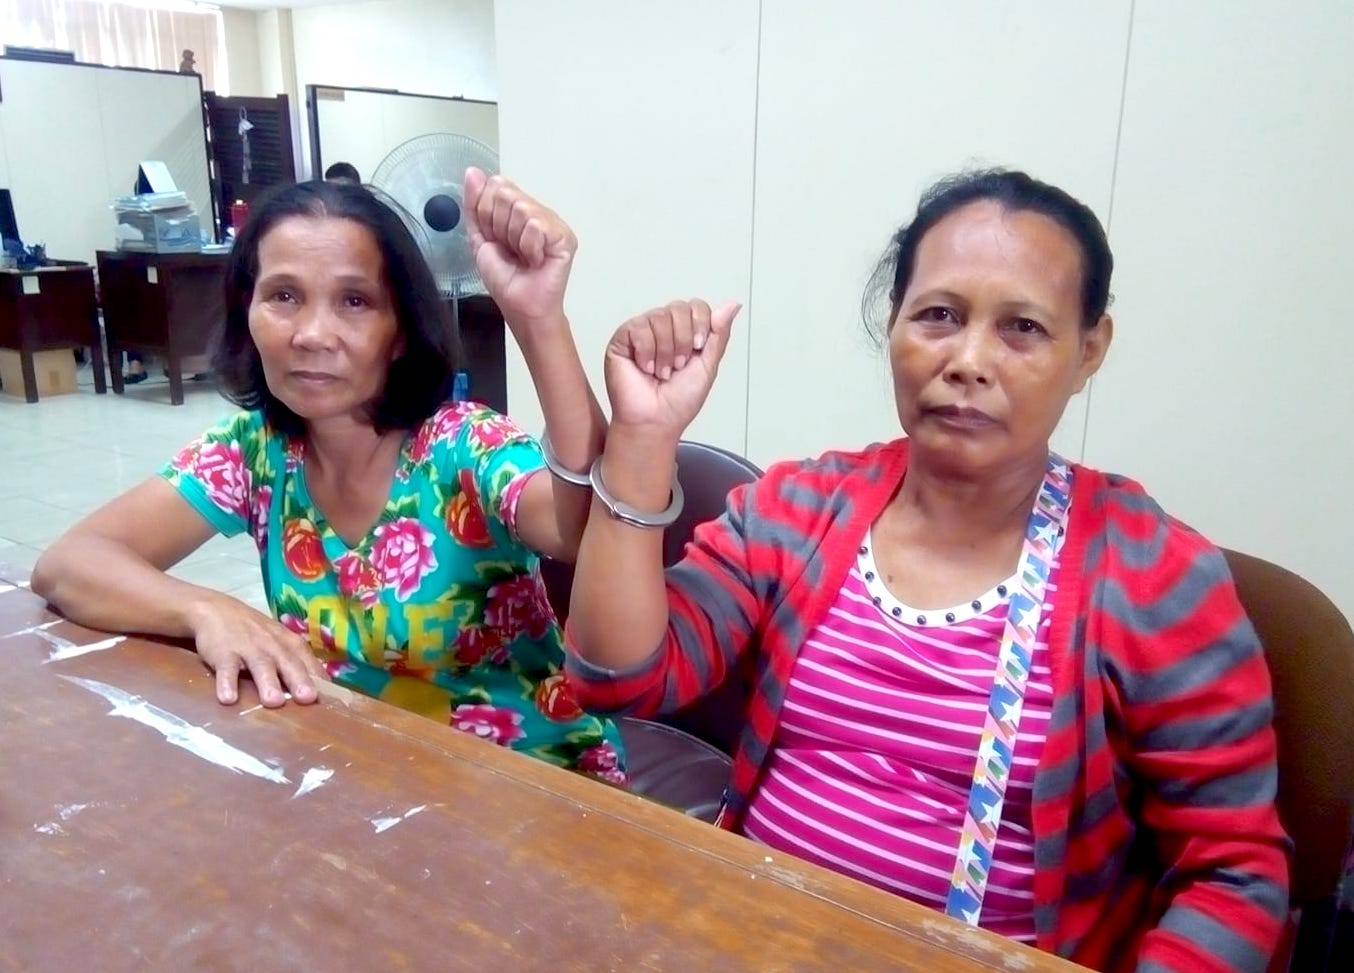 Imelda Pasinabo Sultan (50) and Ma. Lindy Perocho (53) insisted that the firearms and explosives found on top of paper files on the table were all planted by members of the police as commonly maneuvered to legitimize the arrest of activists who criticize the policies and programs of the Duterte Administration.